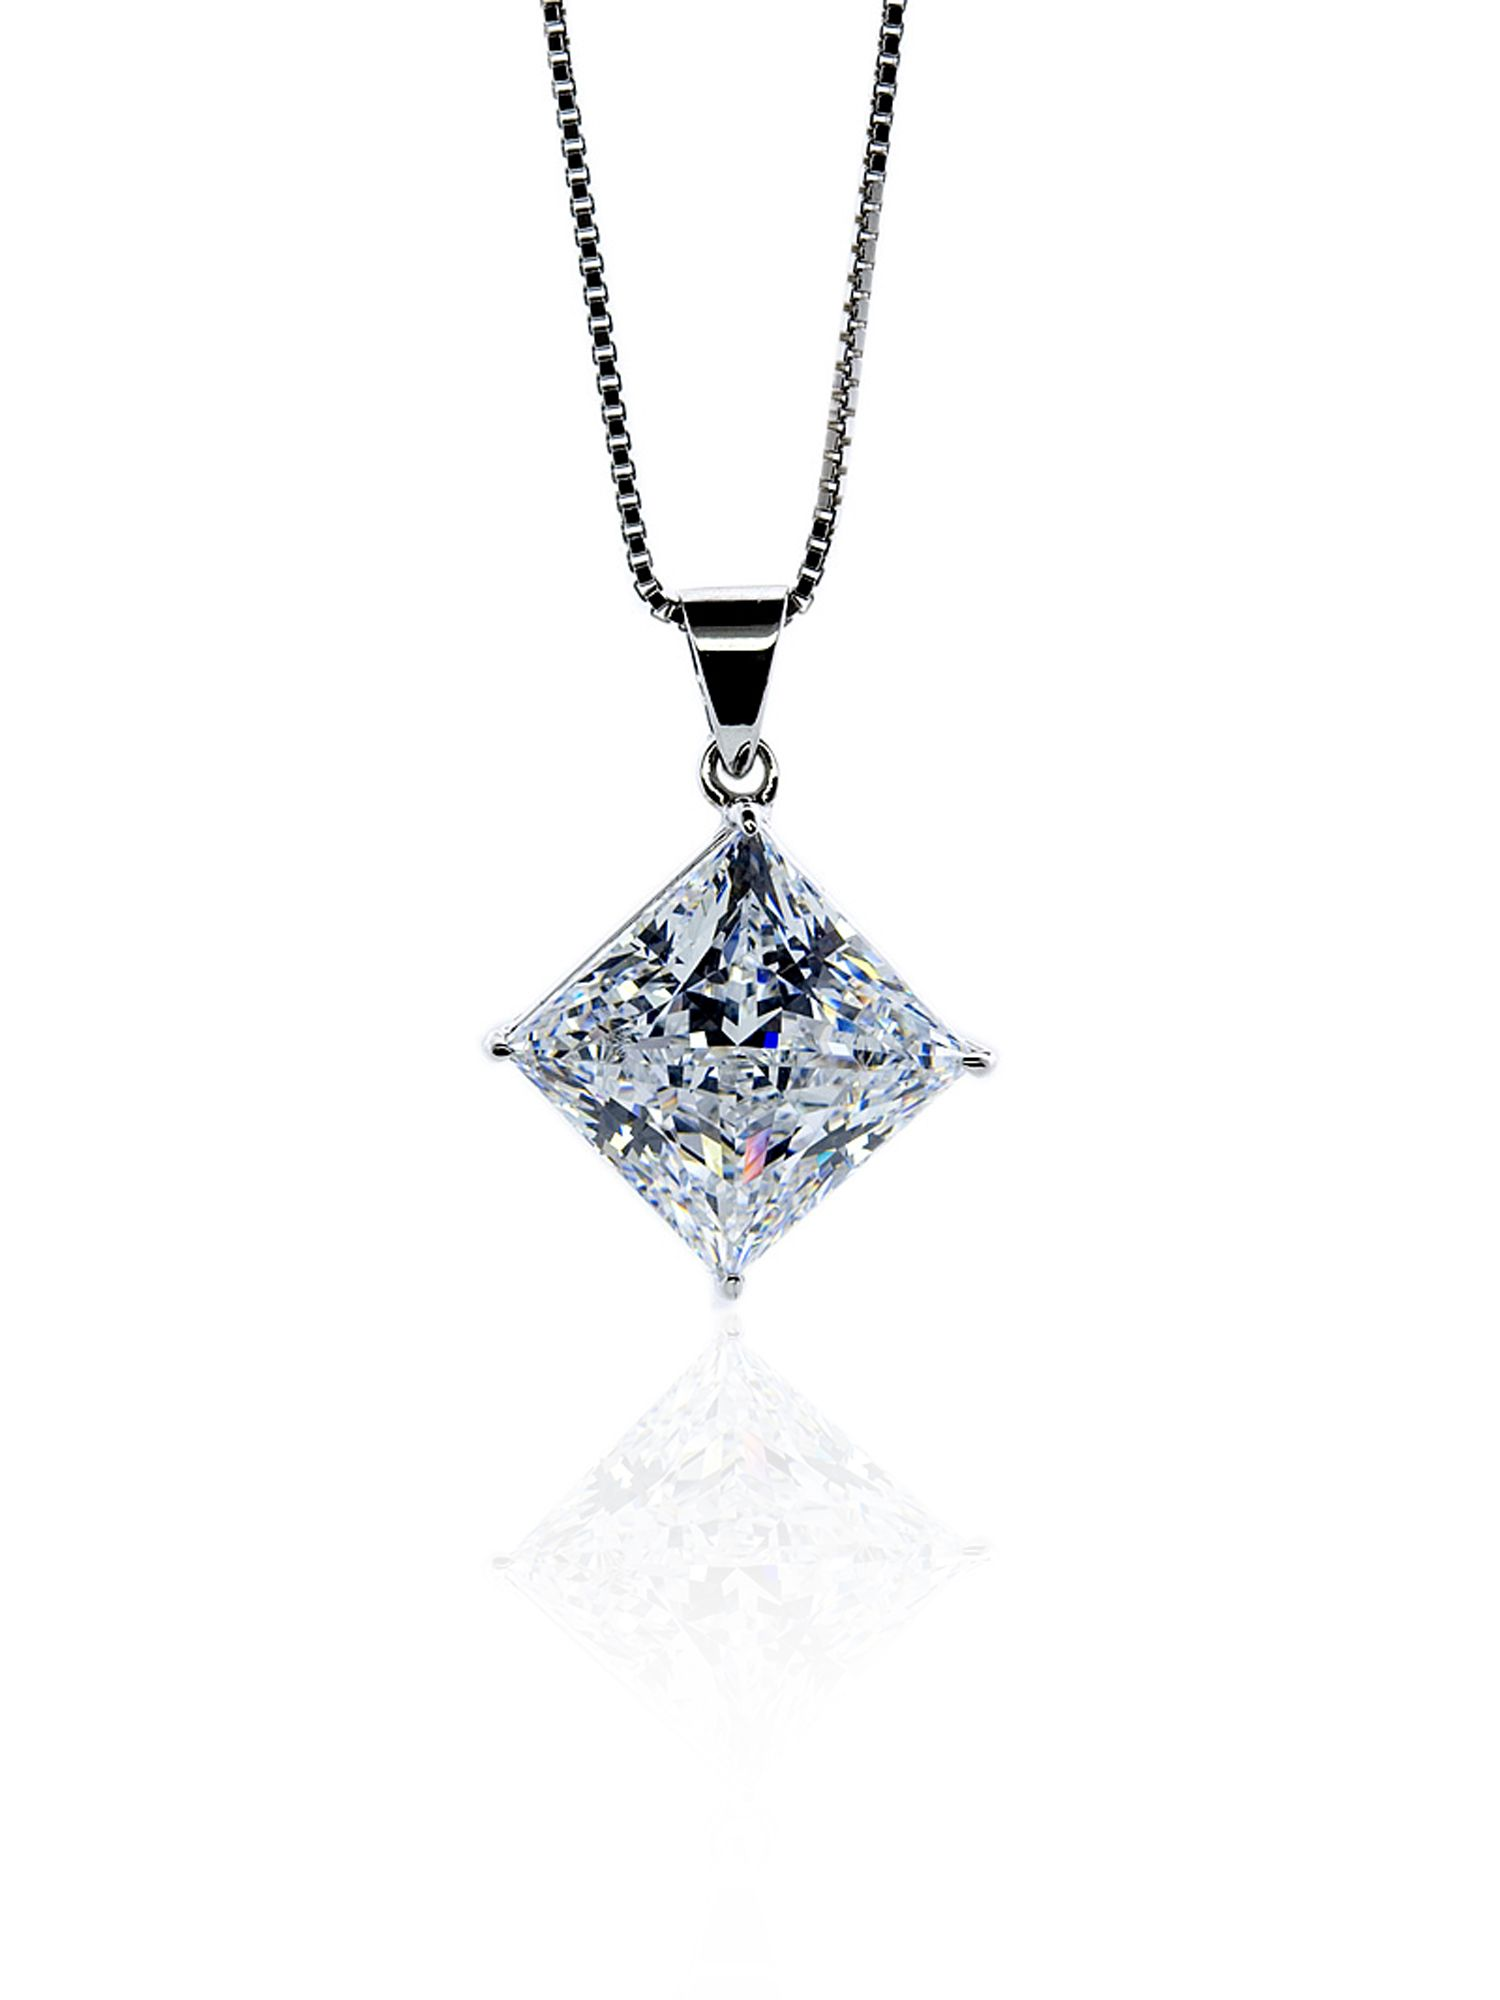 1ct Princess Solitaire Pendant with Chain